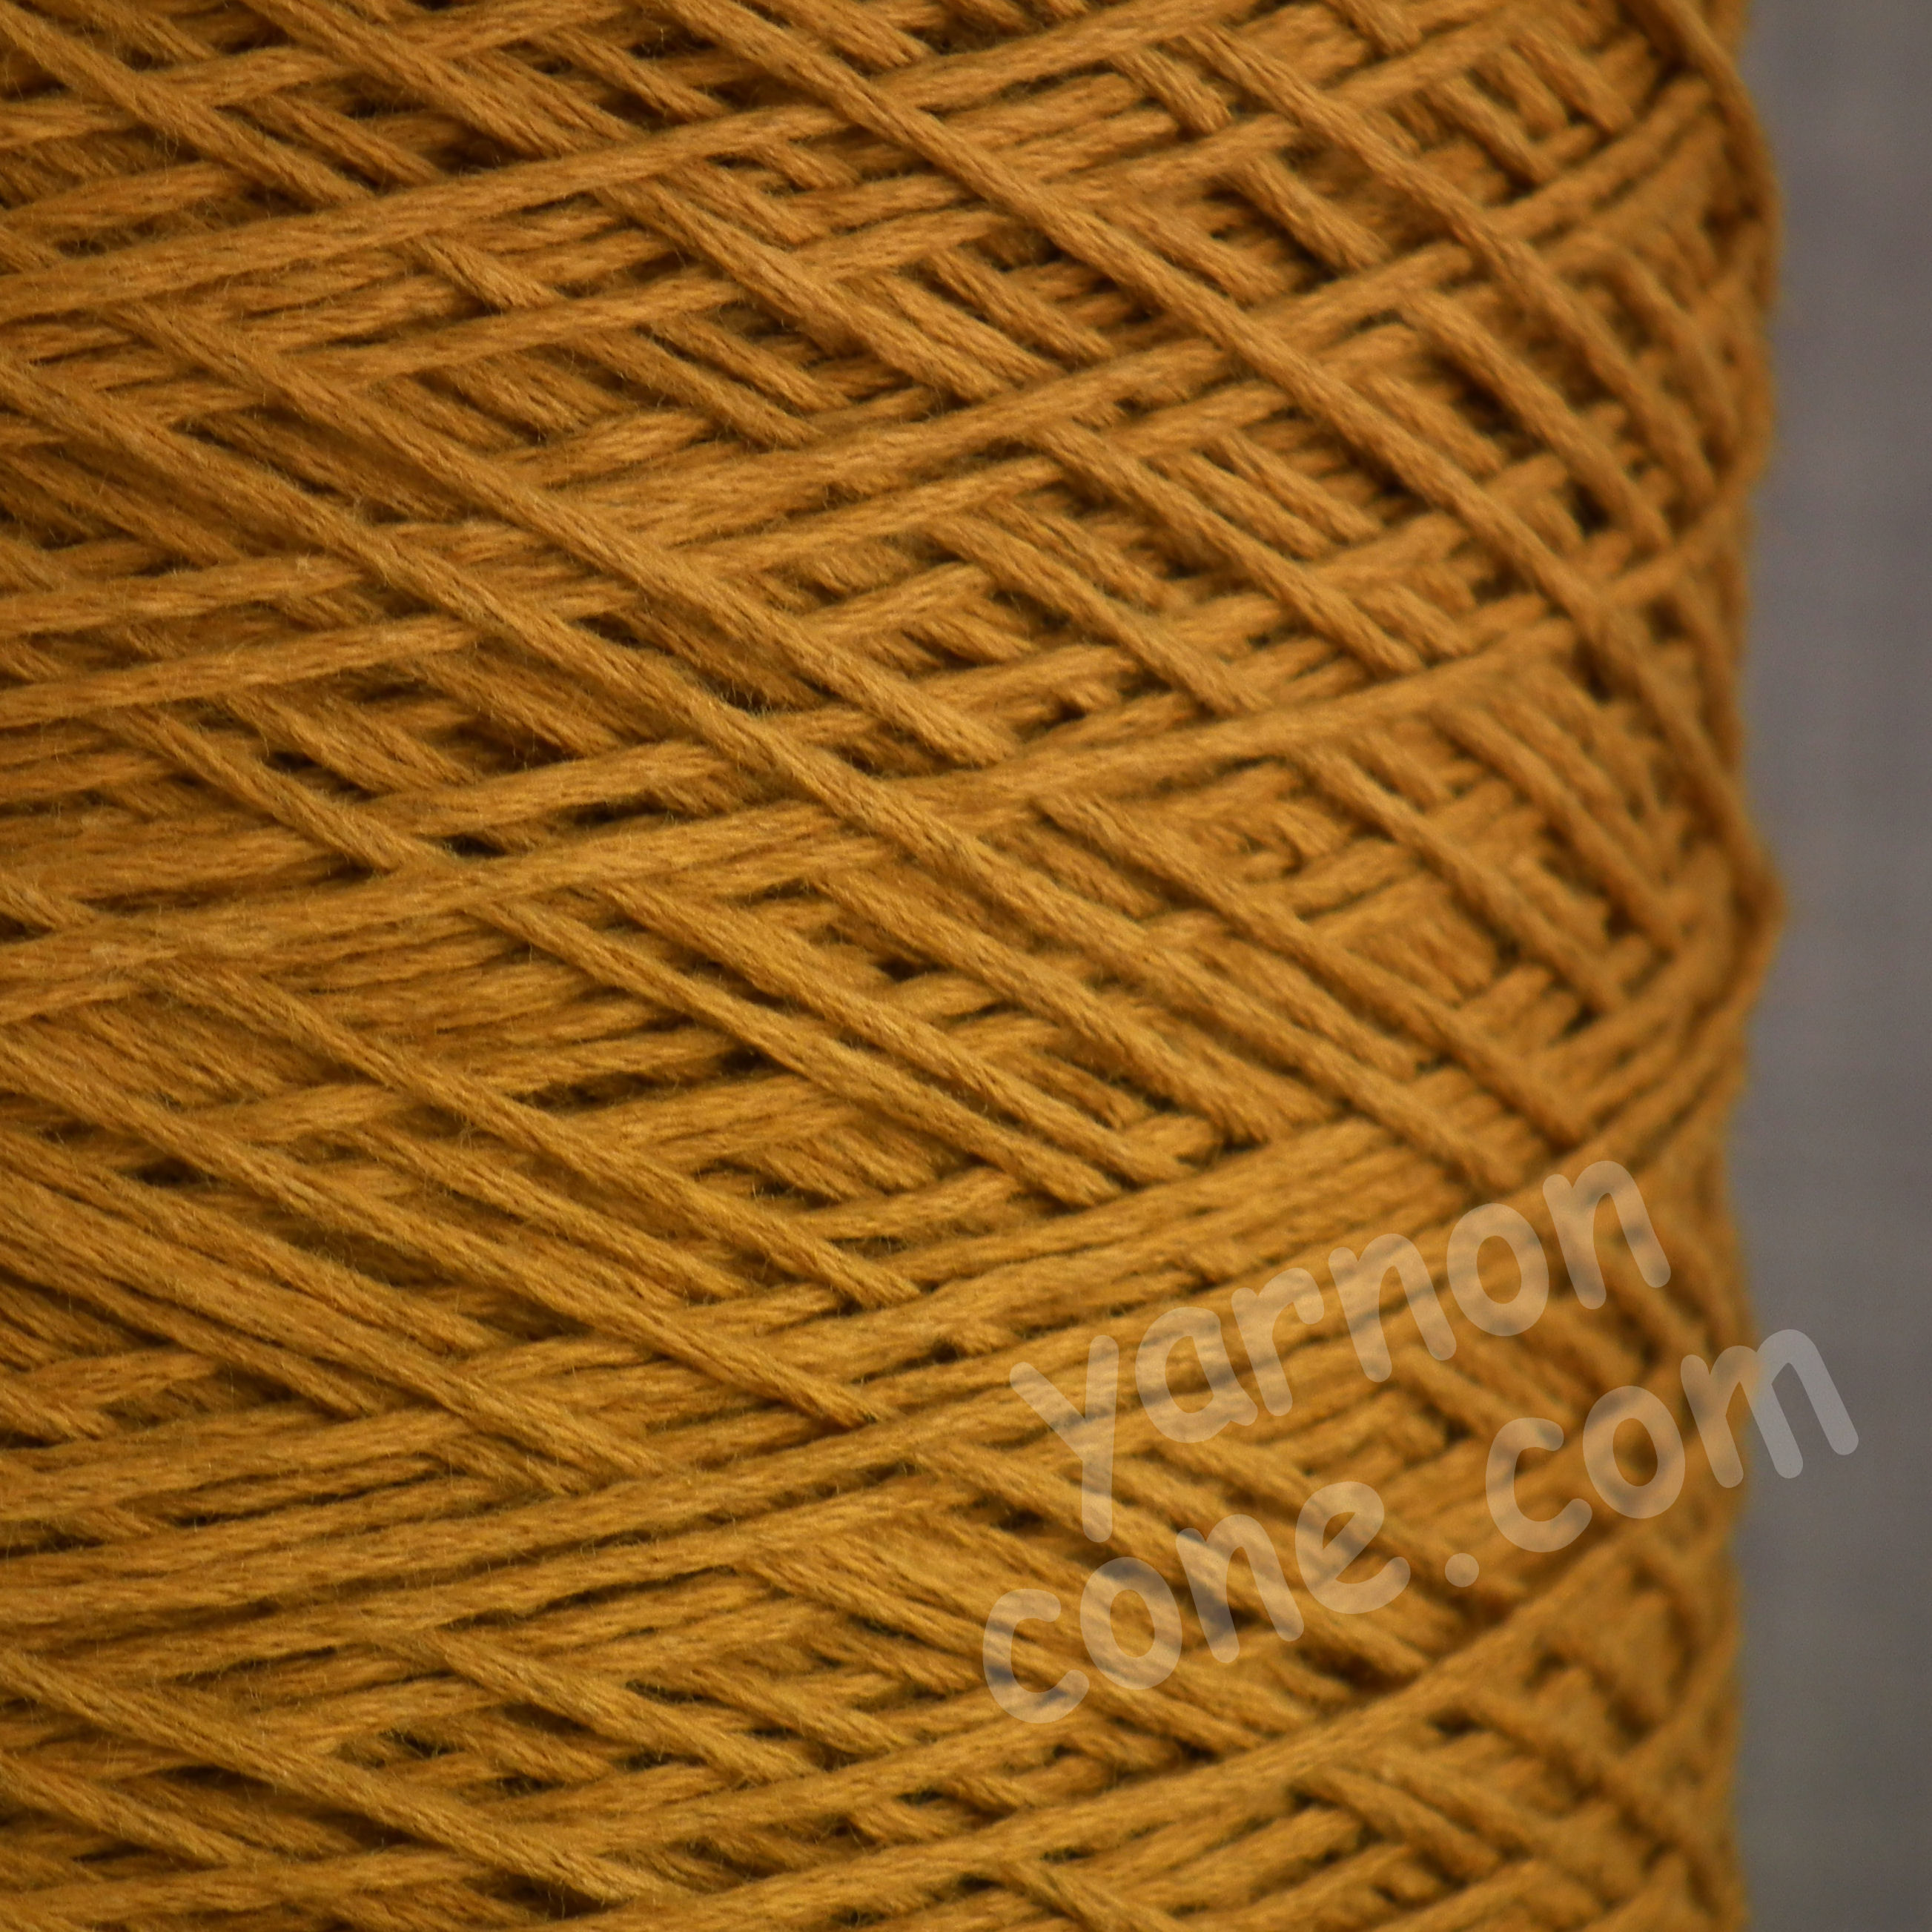 cashmere cotton soft yarn on cone 4 ply knitting weaving crochet luxury UK old gold